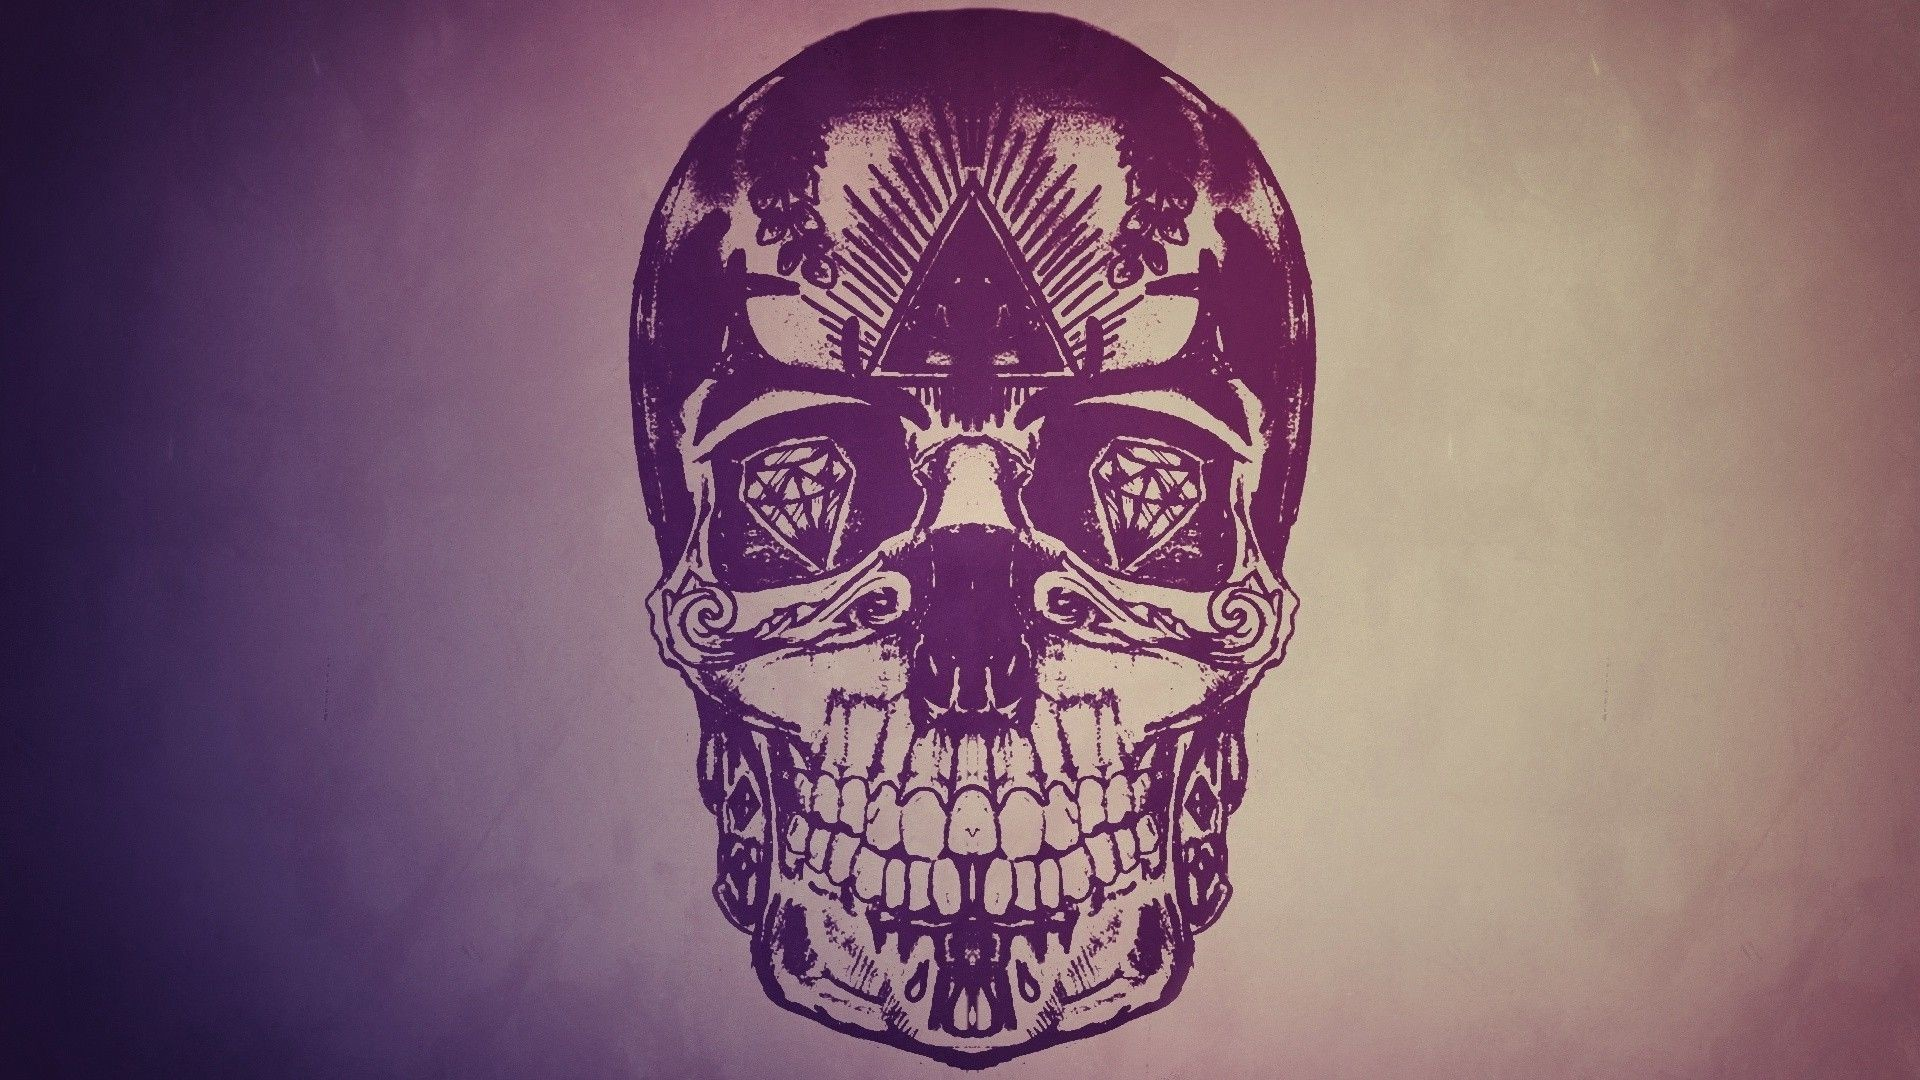 1920x1080 Colorful Skull Pic